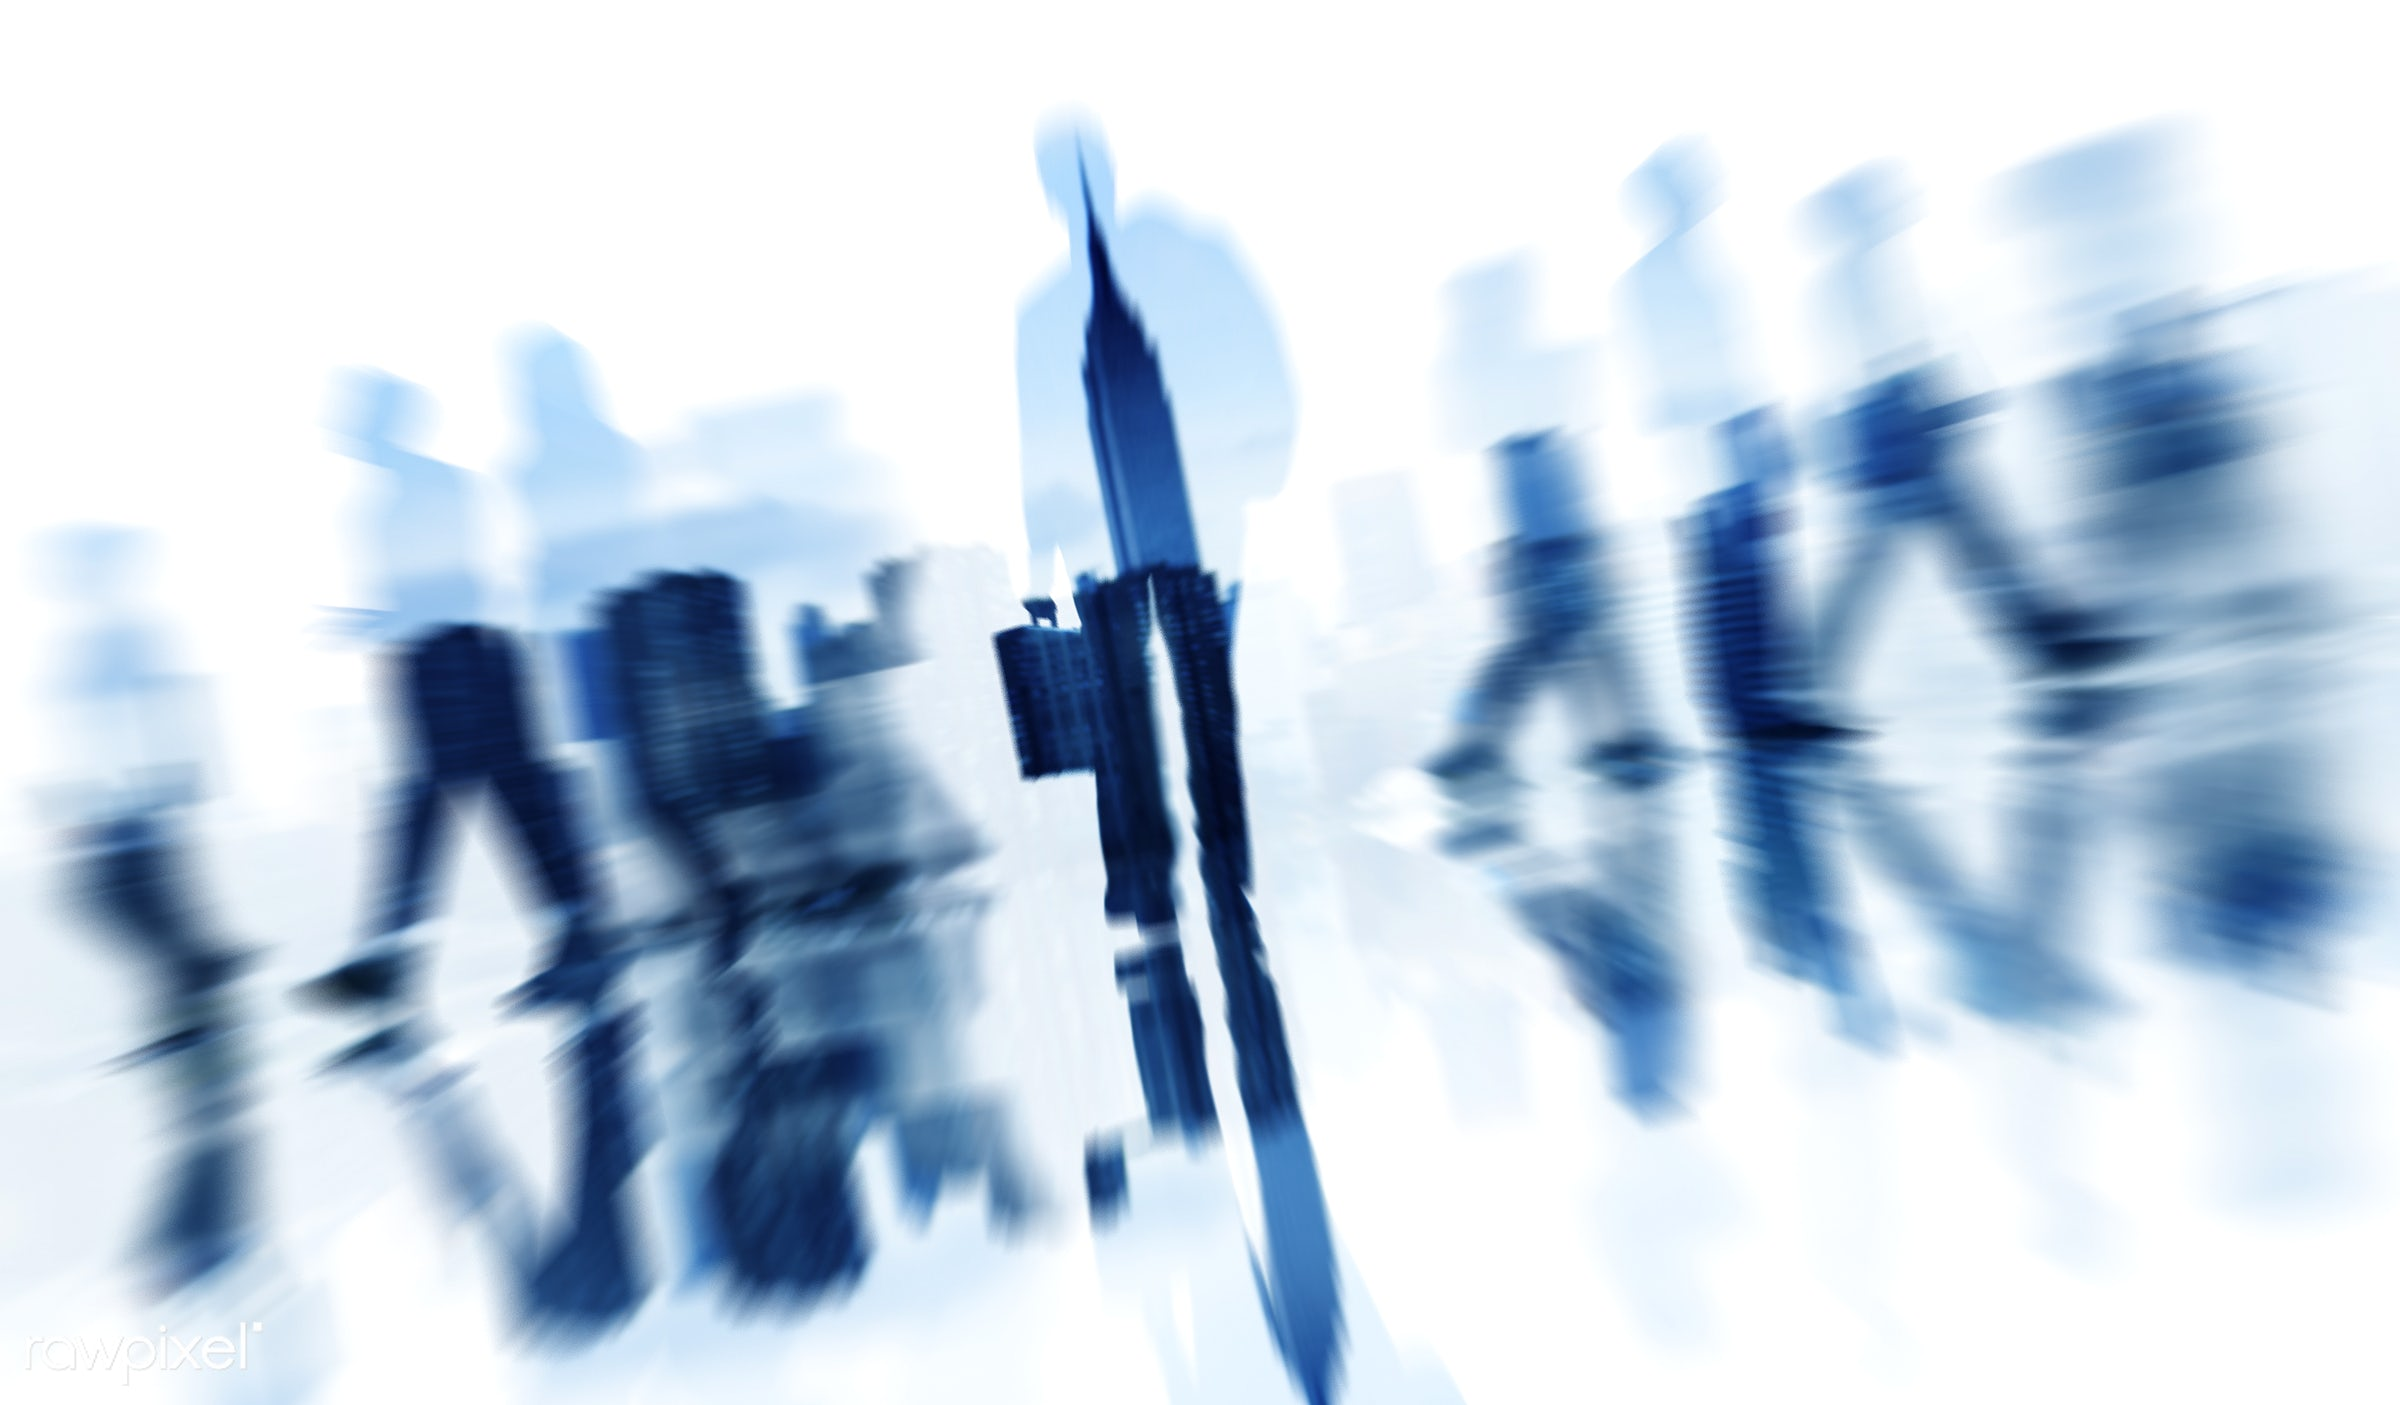 abstract, aspirations, blurred, buildings, business, businessmen, businesswomen, busy, career, city, city scape, commuter,...